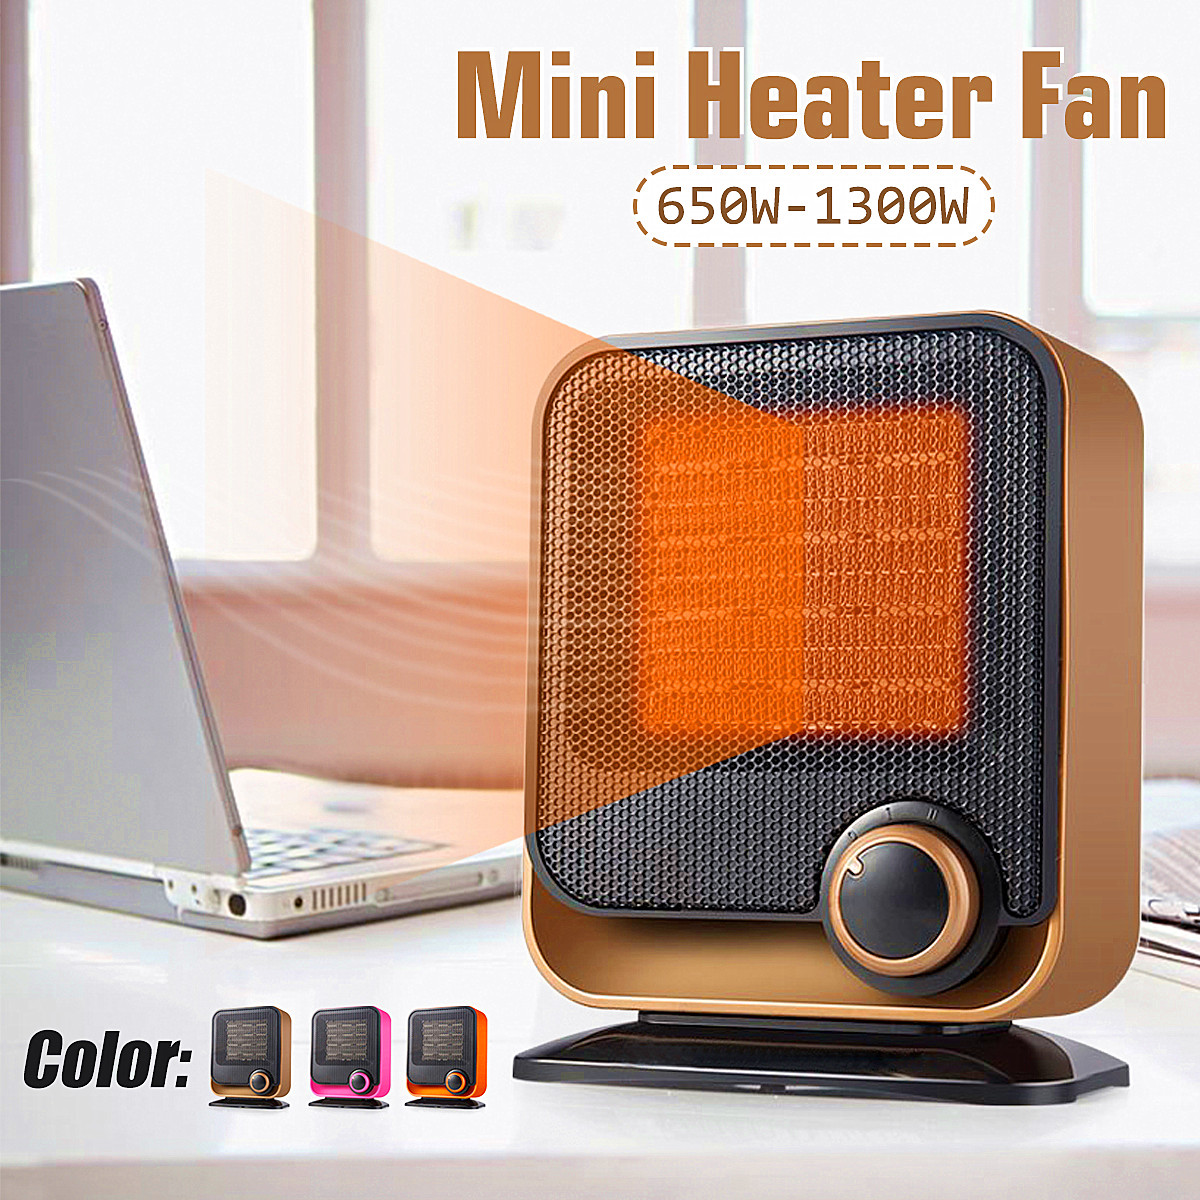 Household Office Mini Heater Energy Saving Bathroom Over Temperature Protect Energy-saving Electric Heater Silent Roasting Stove heater heater electric apparatus mini household energy saving fan use the bathroom